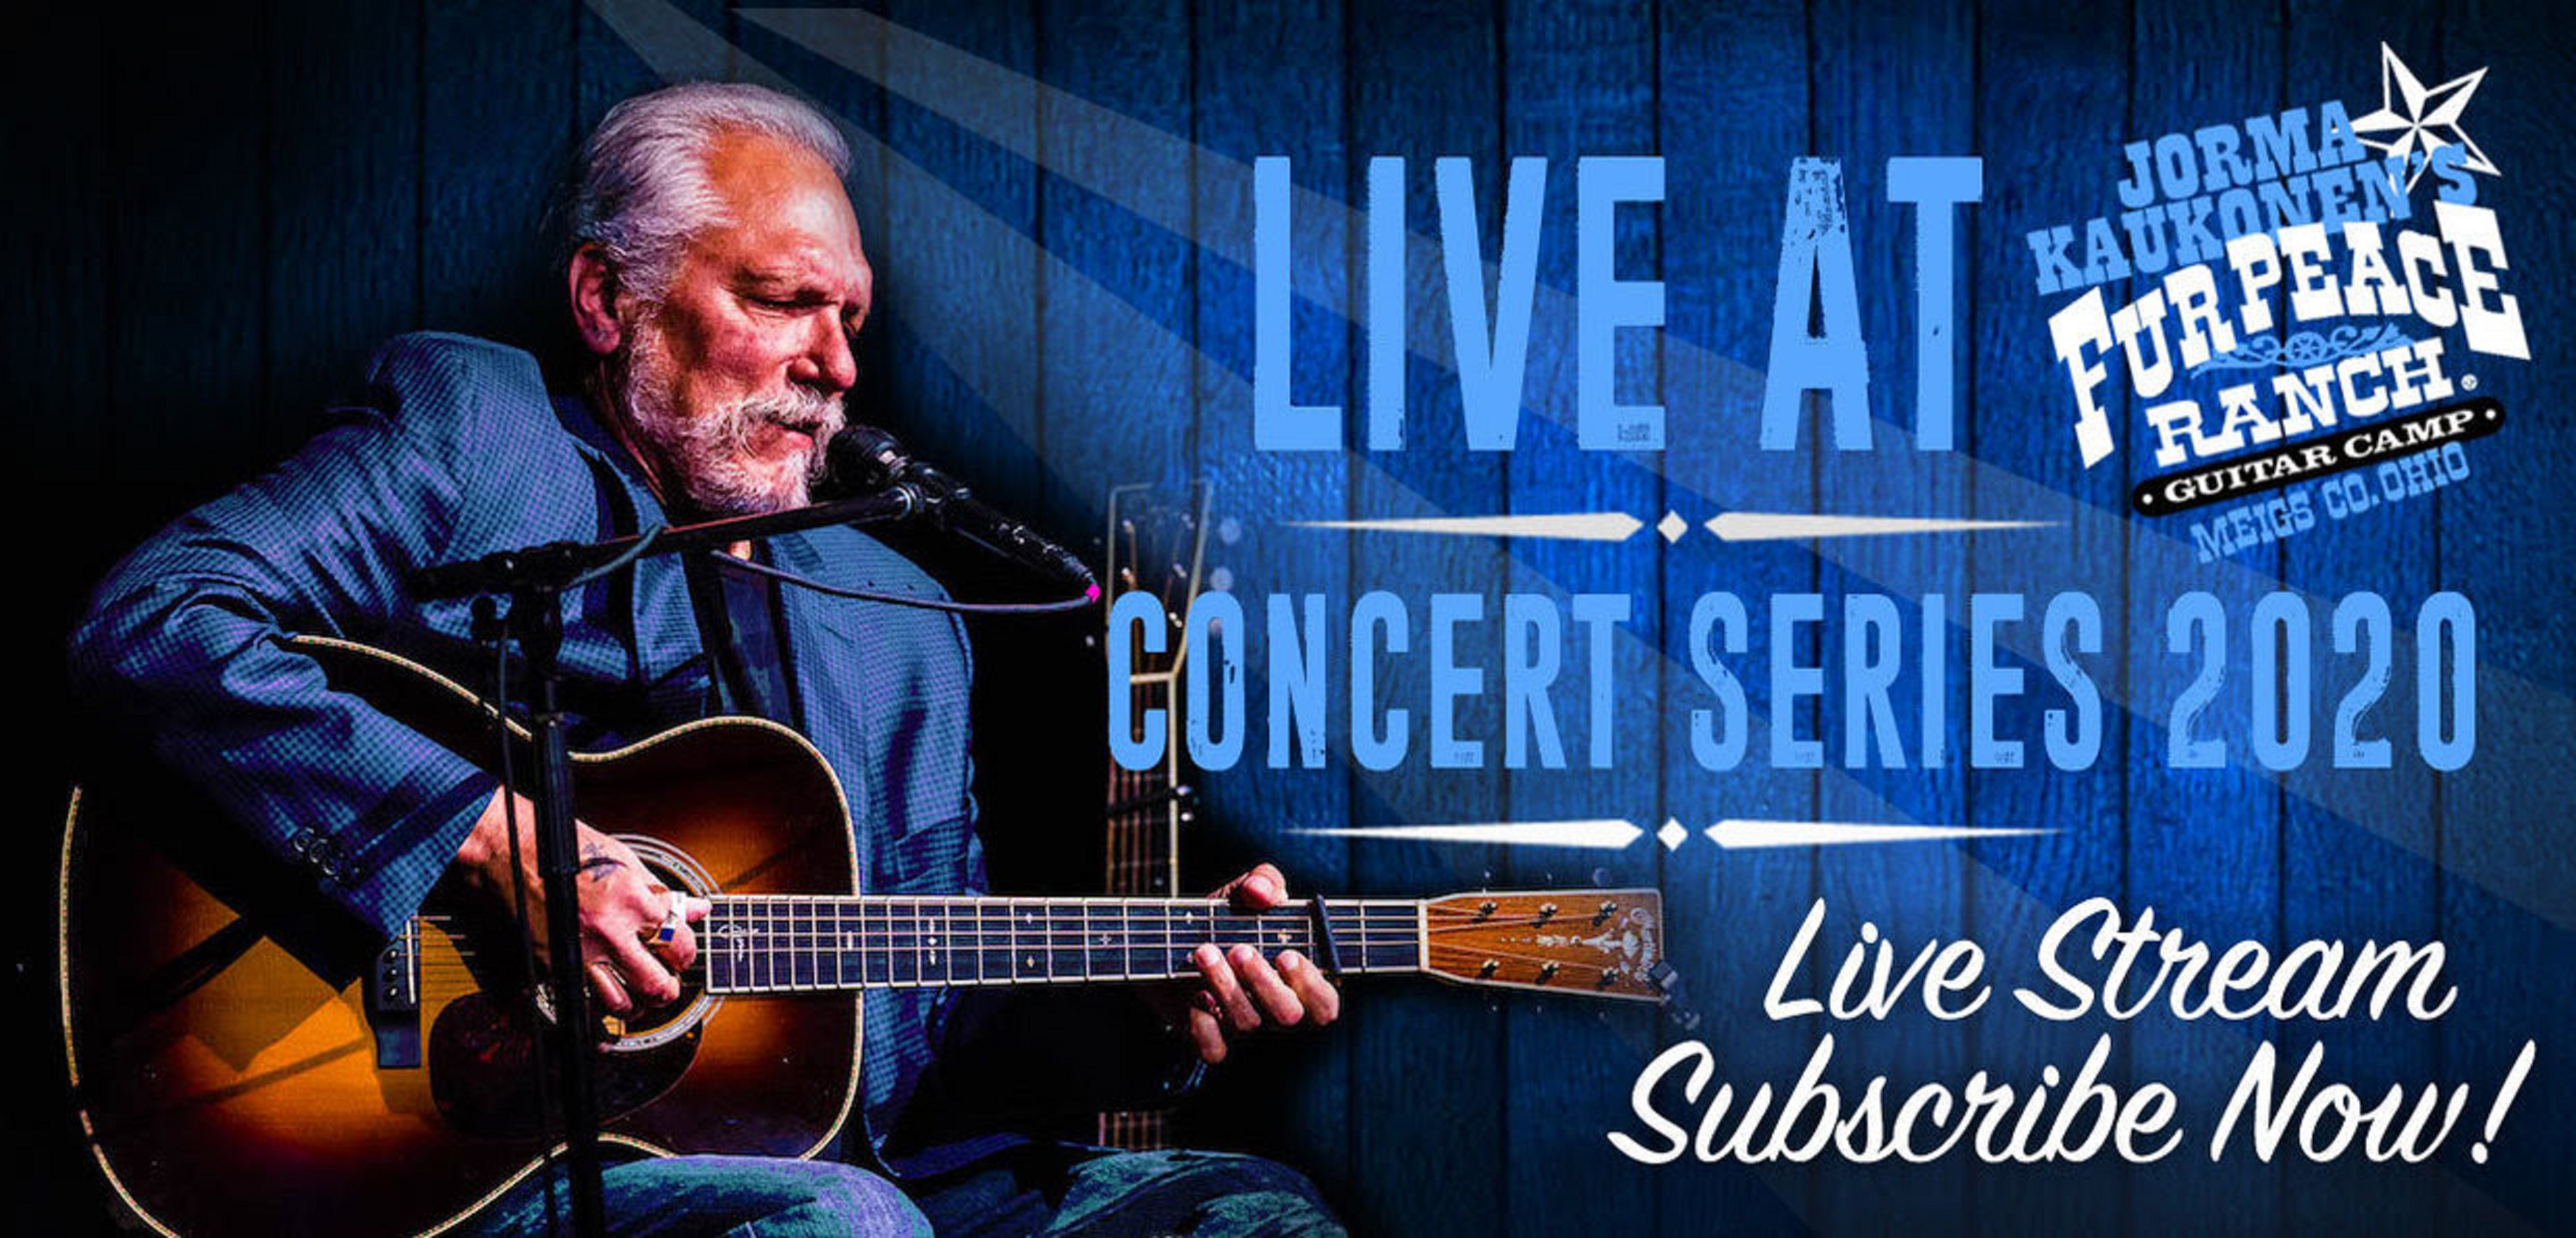 Jorma Kaukonen's 10th Free Live Stream rings clear and clean!